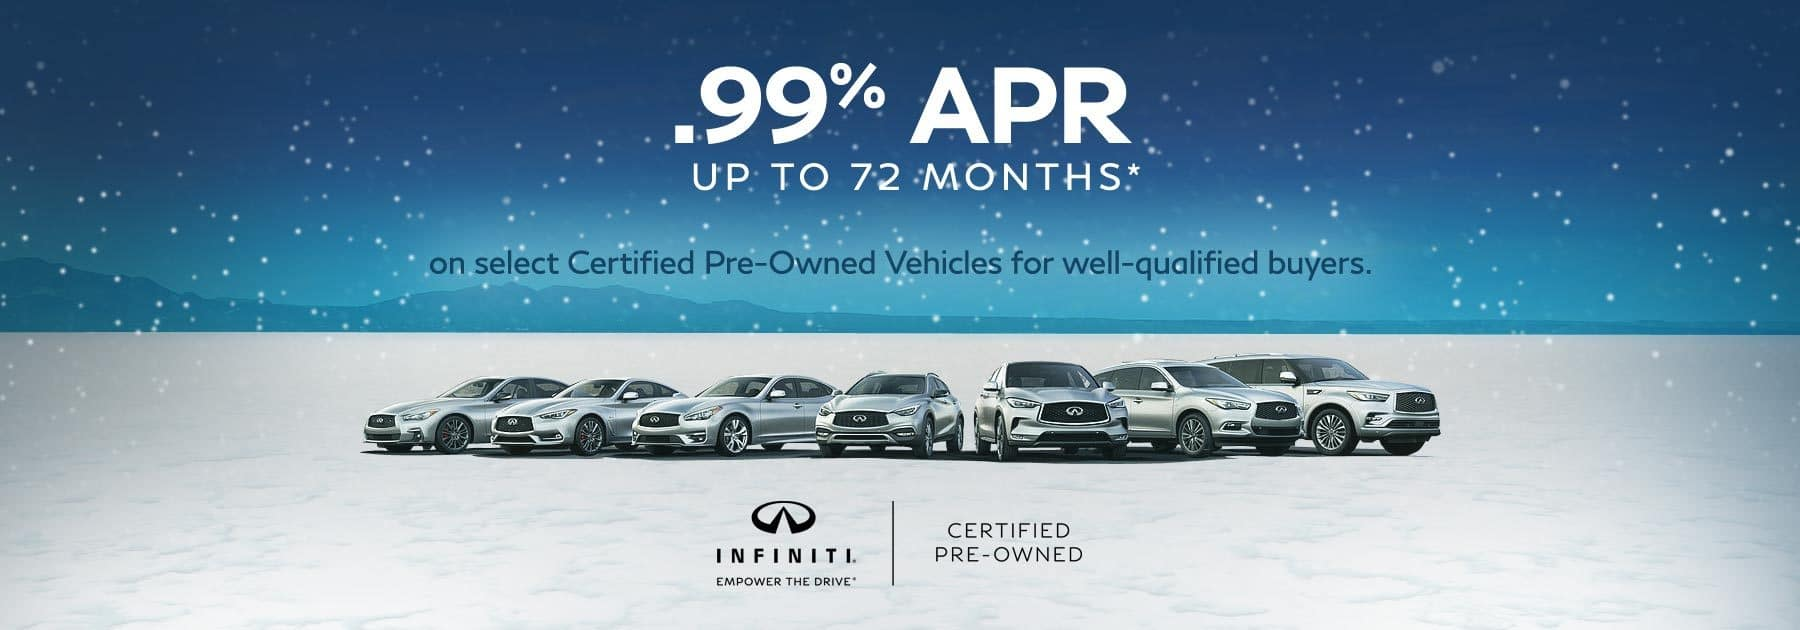 .99% APR Up to 72 months